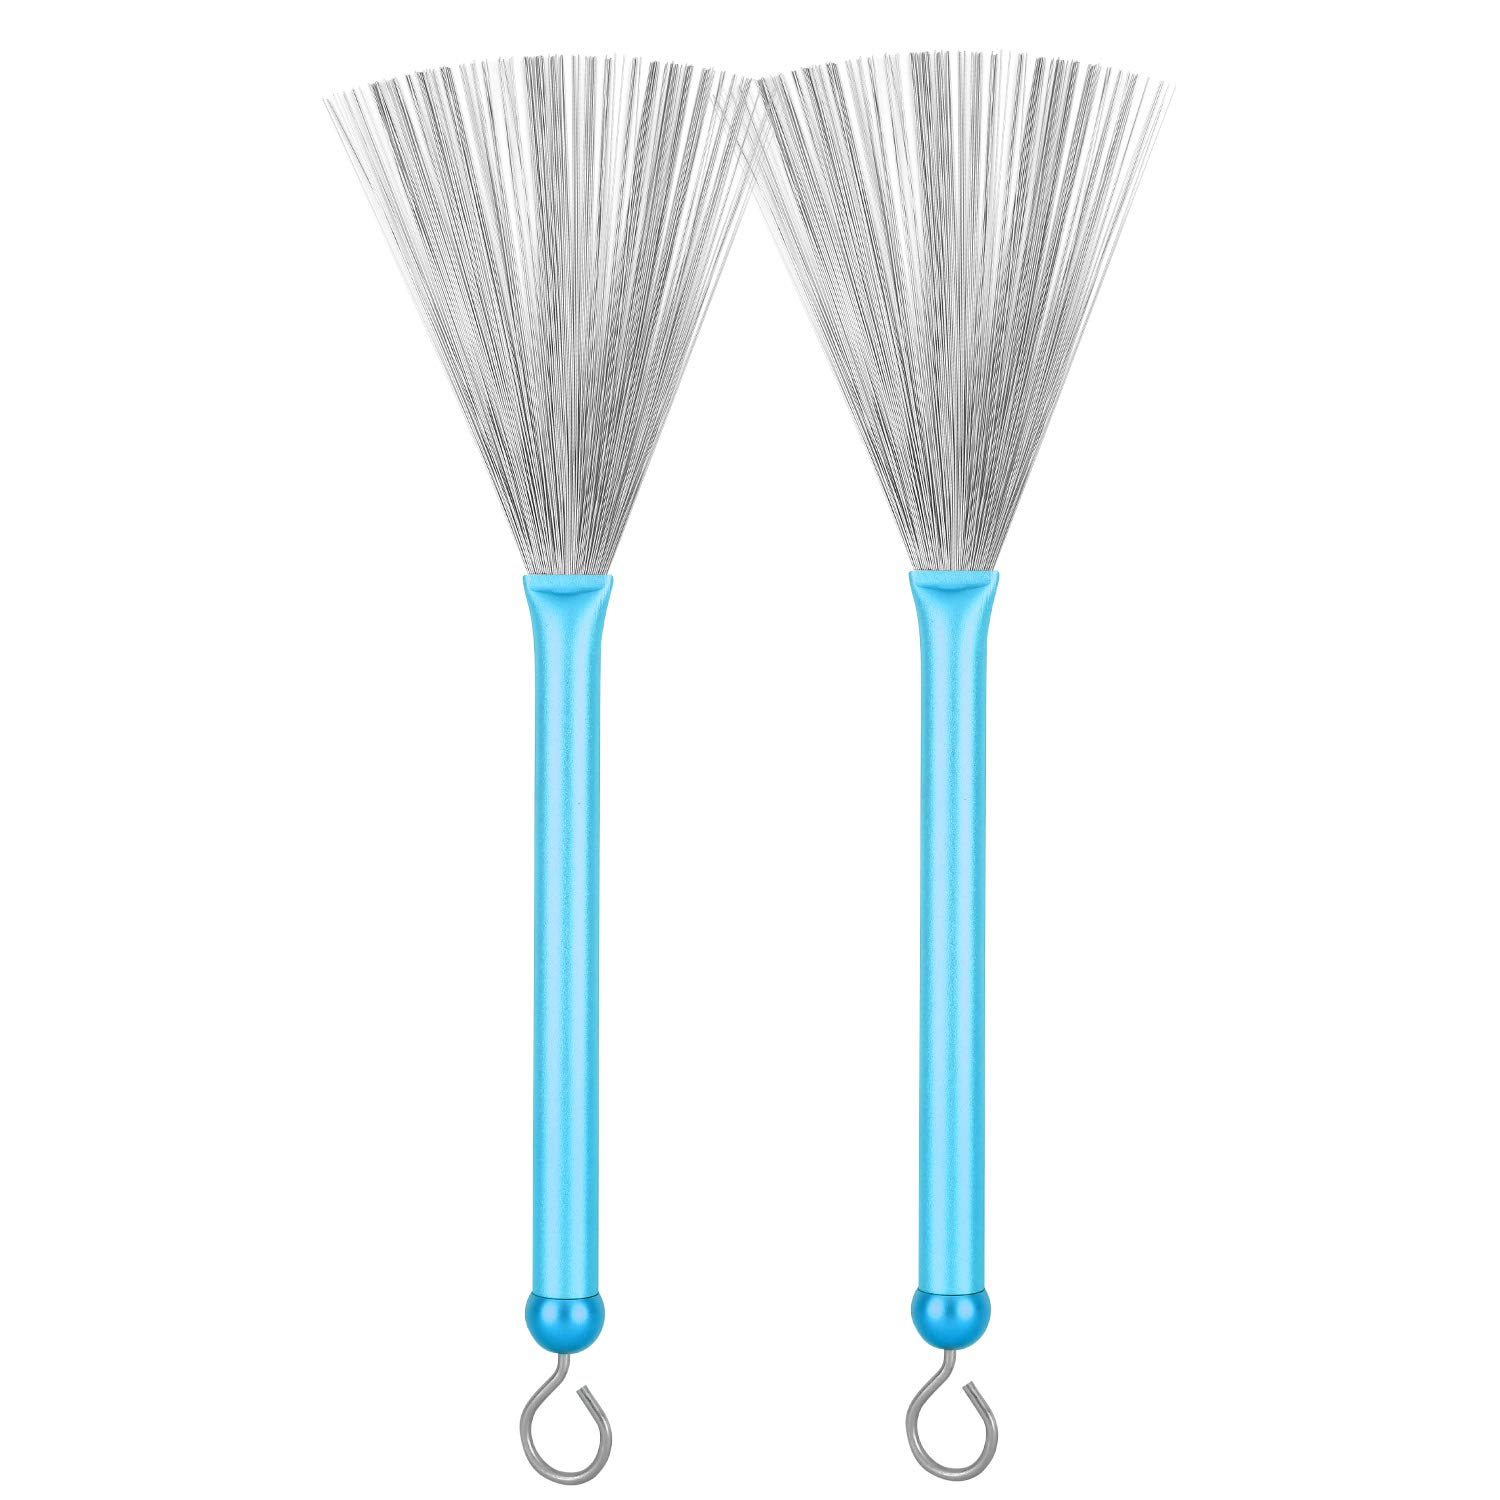 1 Pair Drum Brushes Retractable Drum Wire Brushes Drum Sticks Brush with Comfortable Aluminum Handles, Perfect Gift for Rock Band, Jazz Folk, Drummers, Music Lovers, Beginners, Students, Adults(Blue) 71dOUF95KVL